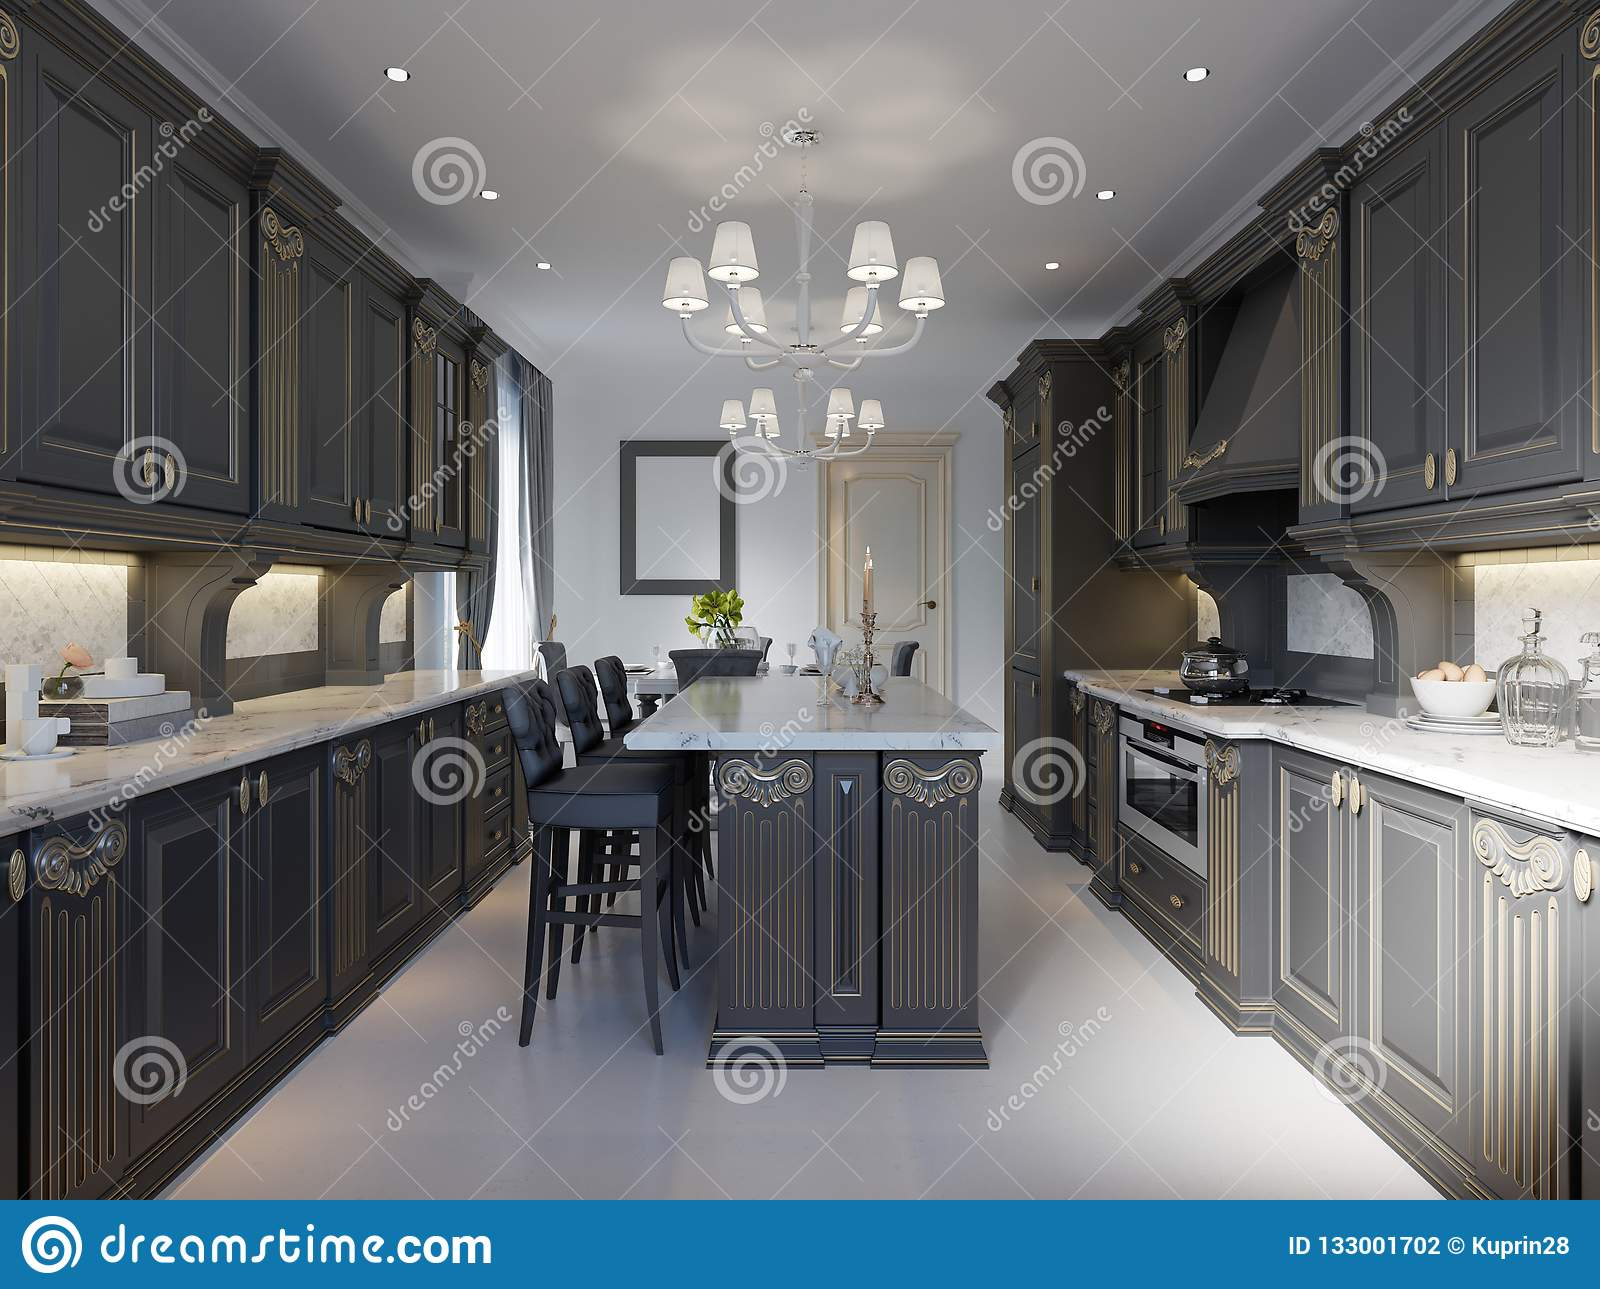 Modern Classic Kitchen Design With Black Cabinets And White Marble Worktop And Floor Stock Illustration Illustration Of Floor Kitchen 133001702